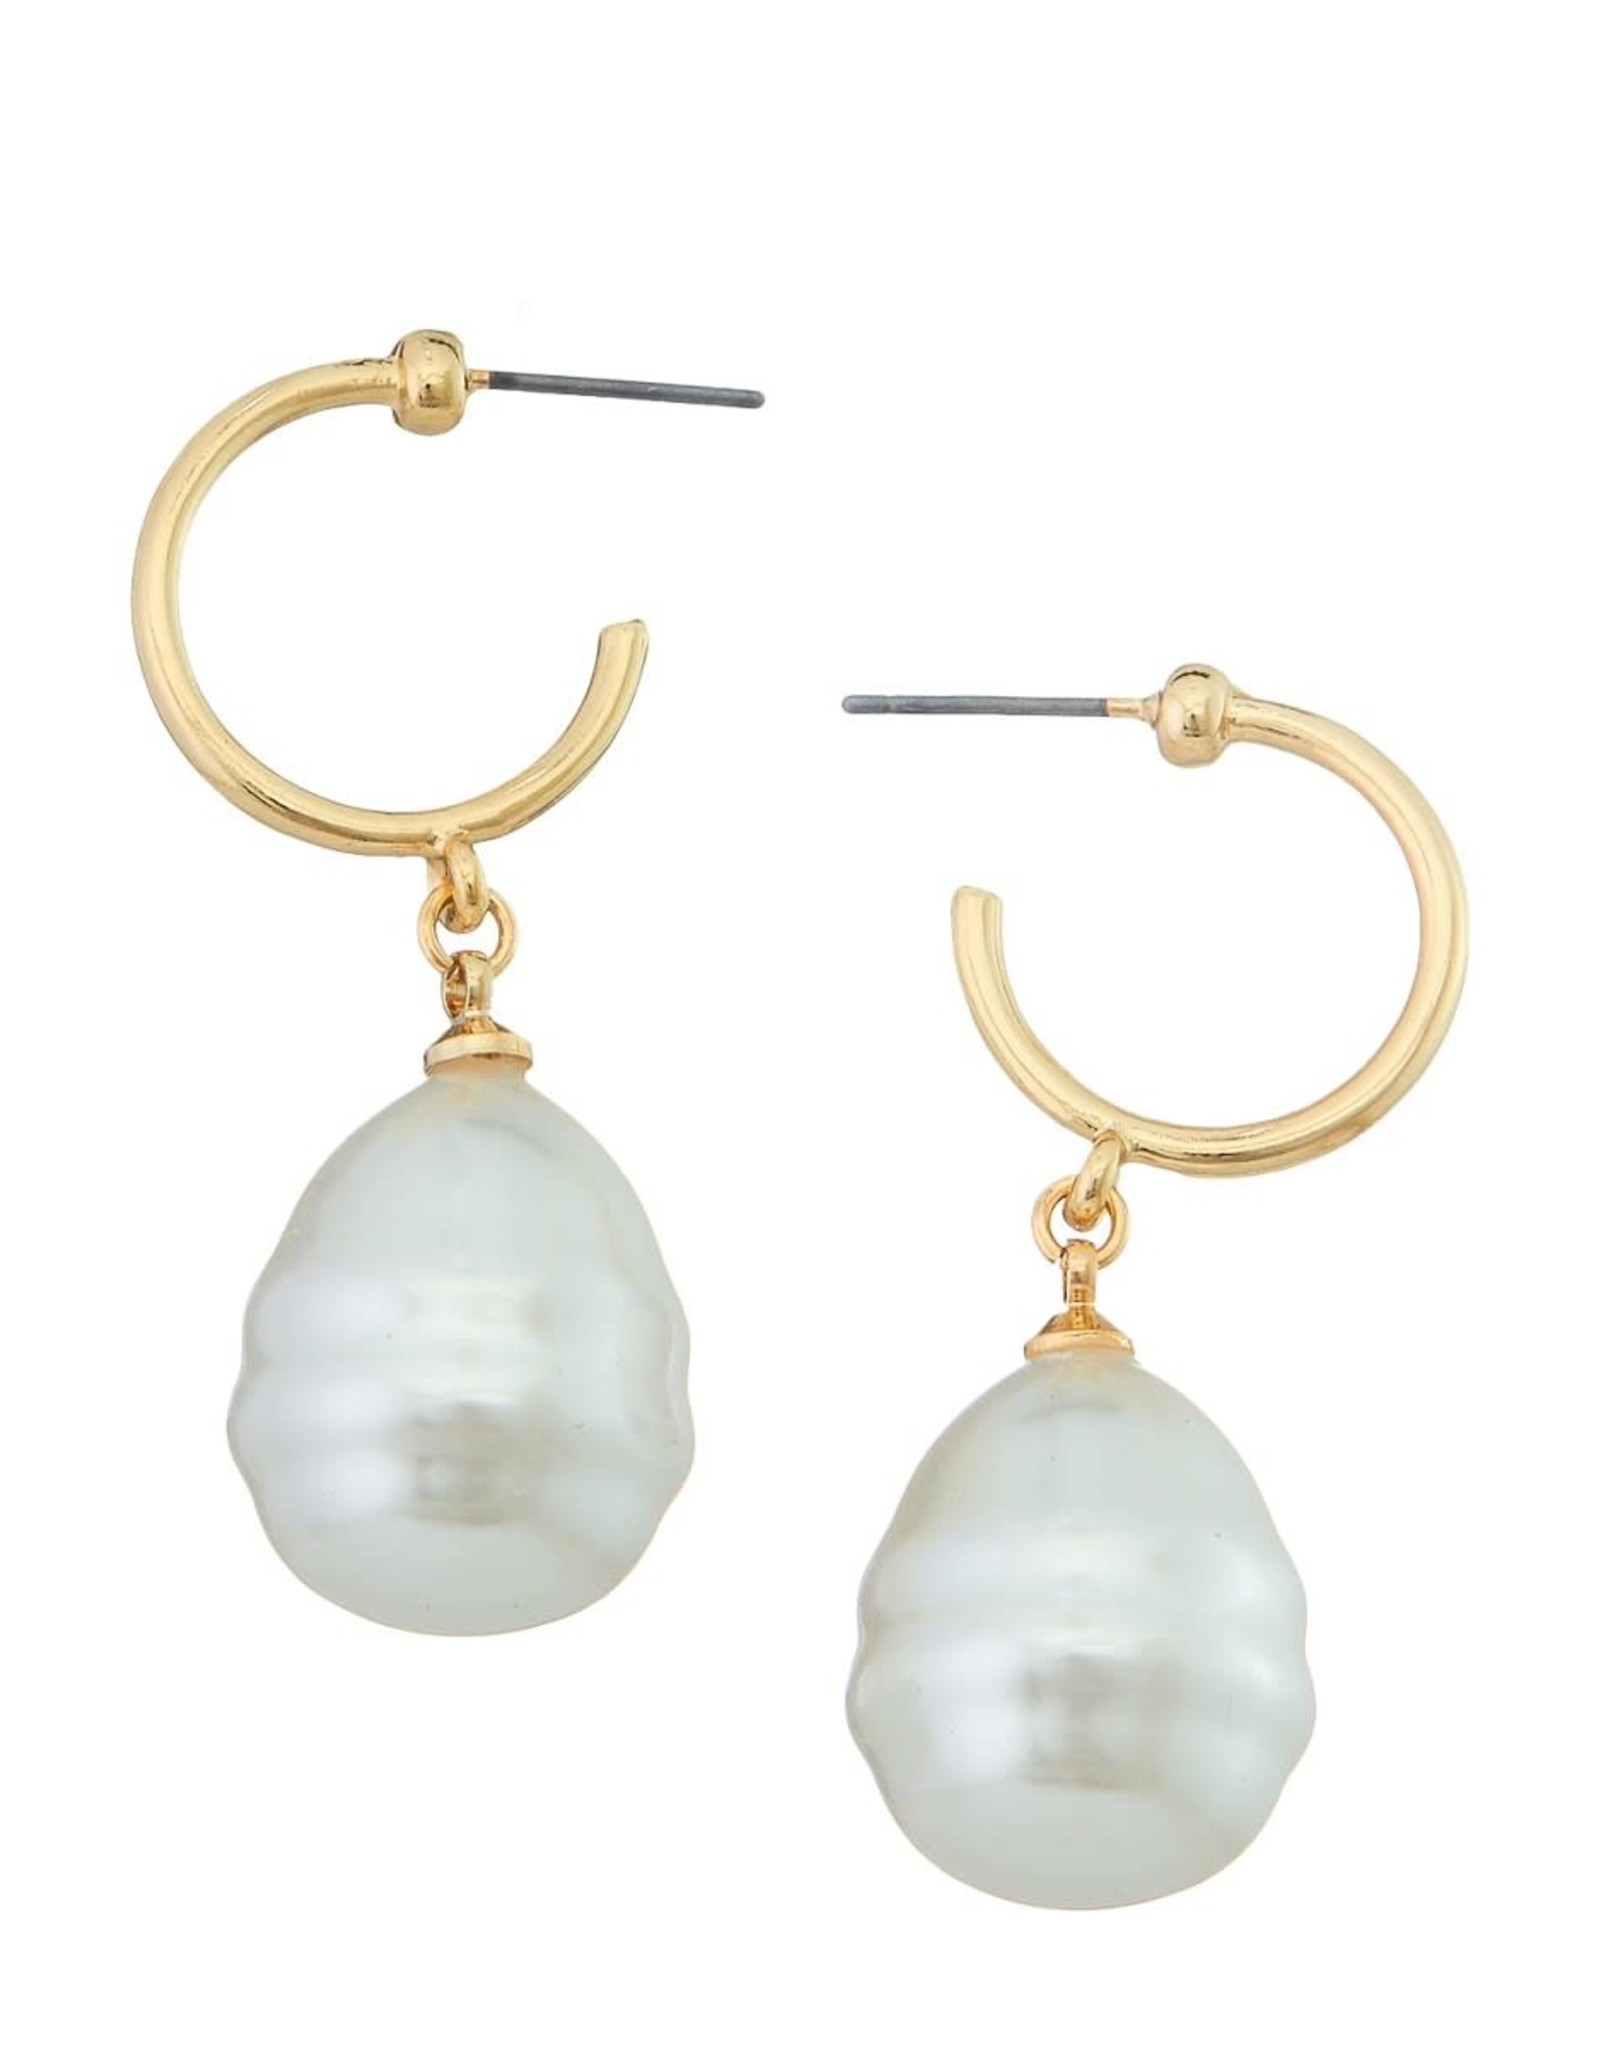 GOLD OPEN HOOP EARRINGS WITH FRESHWATER PEARL